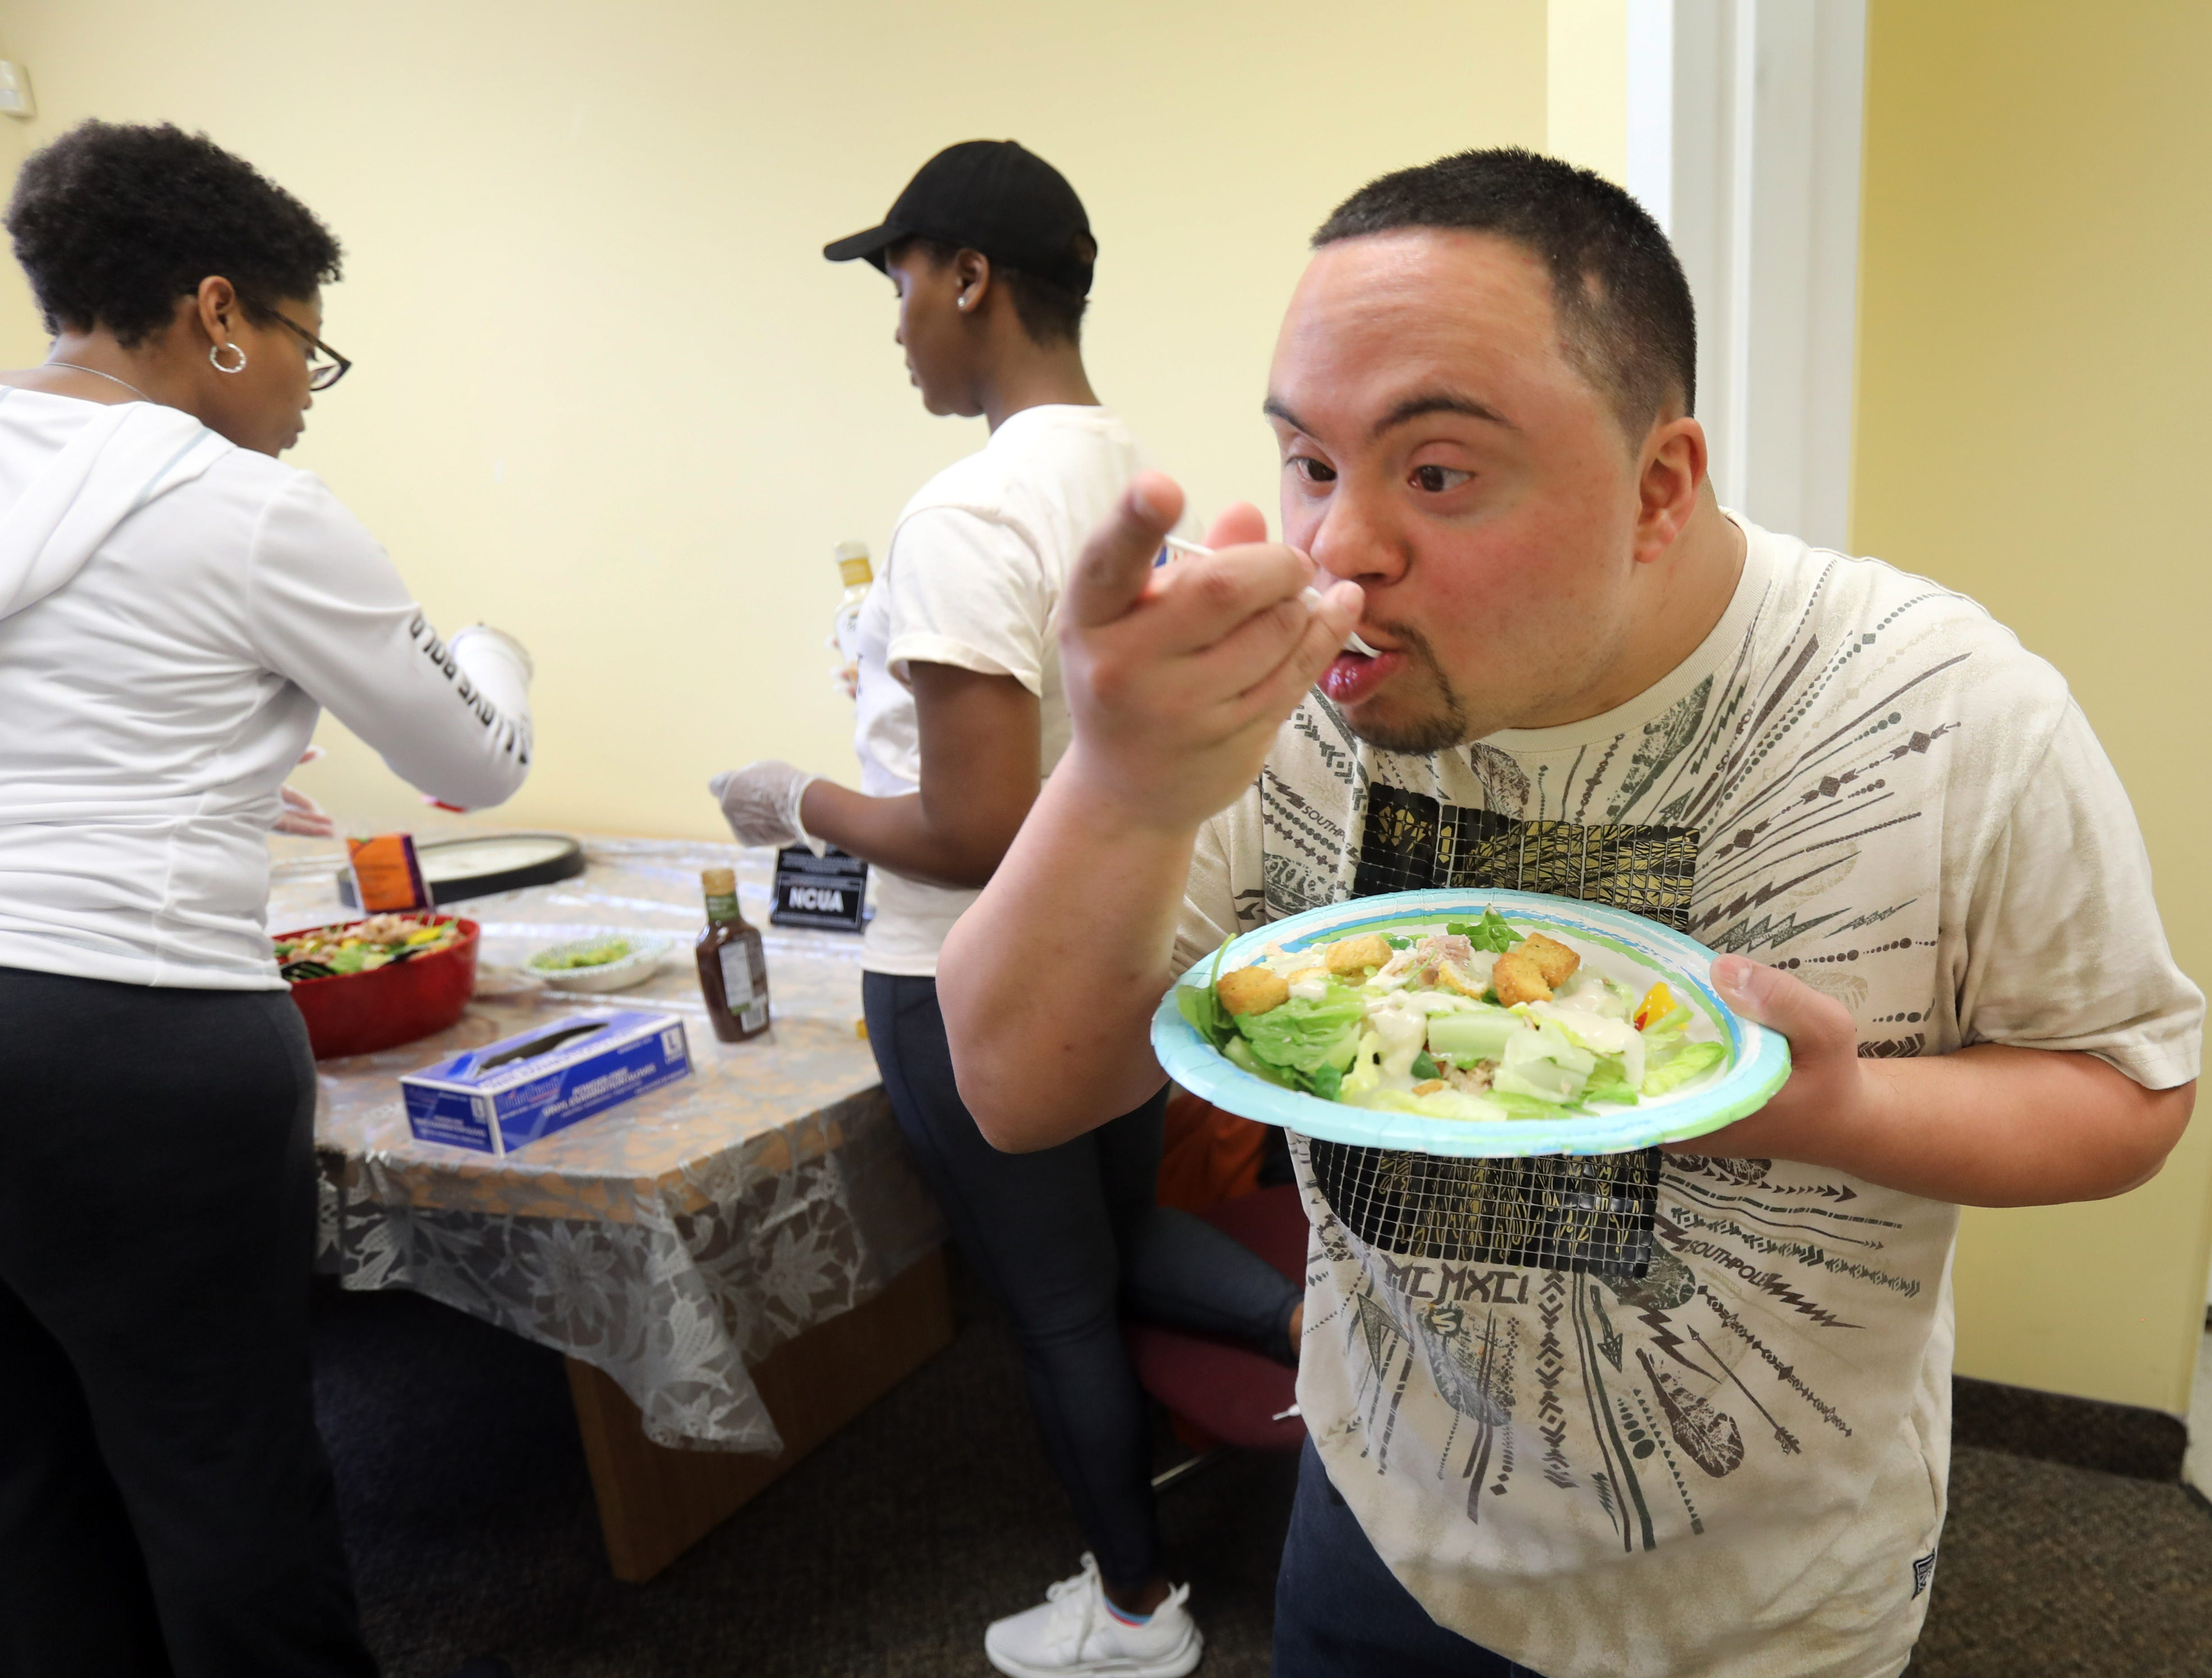 Anthony Mundy, 29 takes a bite out of the chicken salad he made for lunch during a day program atJawoniocalled Without Walls or WOW in Spring Valley March 14, 2019.